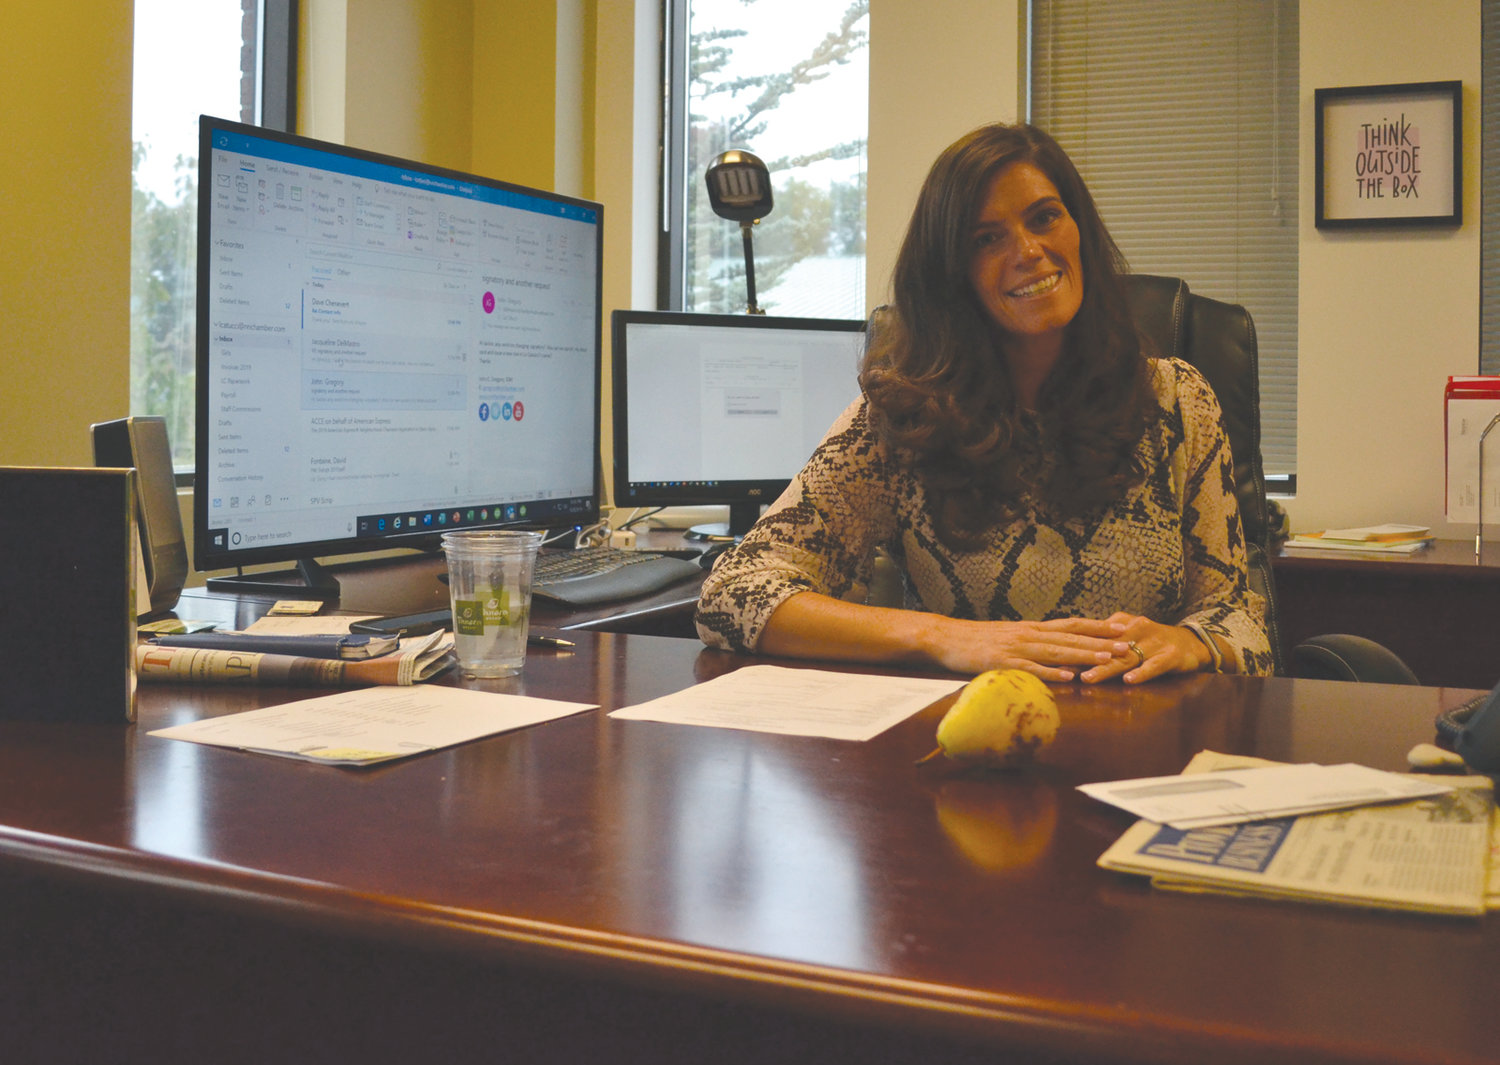 NEW CHAPTER AT THE CHAMBER: New NRICC President and CEO Liz Catucci spoke to the Sun Rise last week about her past experiences, friendship with former Chamber leader John Gregory, the day she got the good news and more.